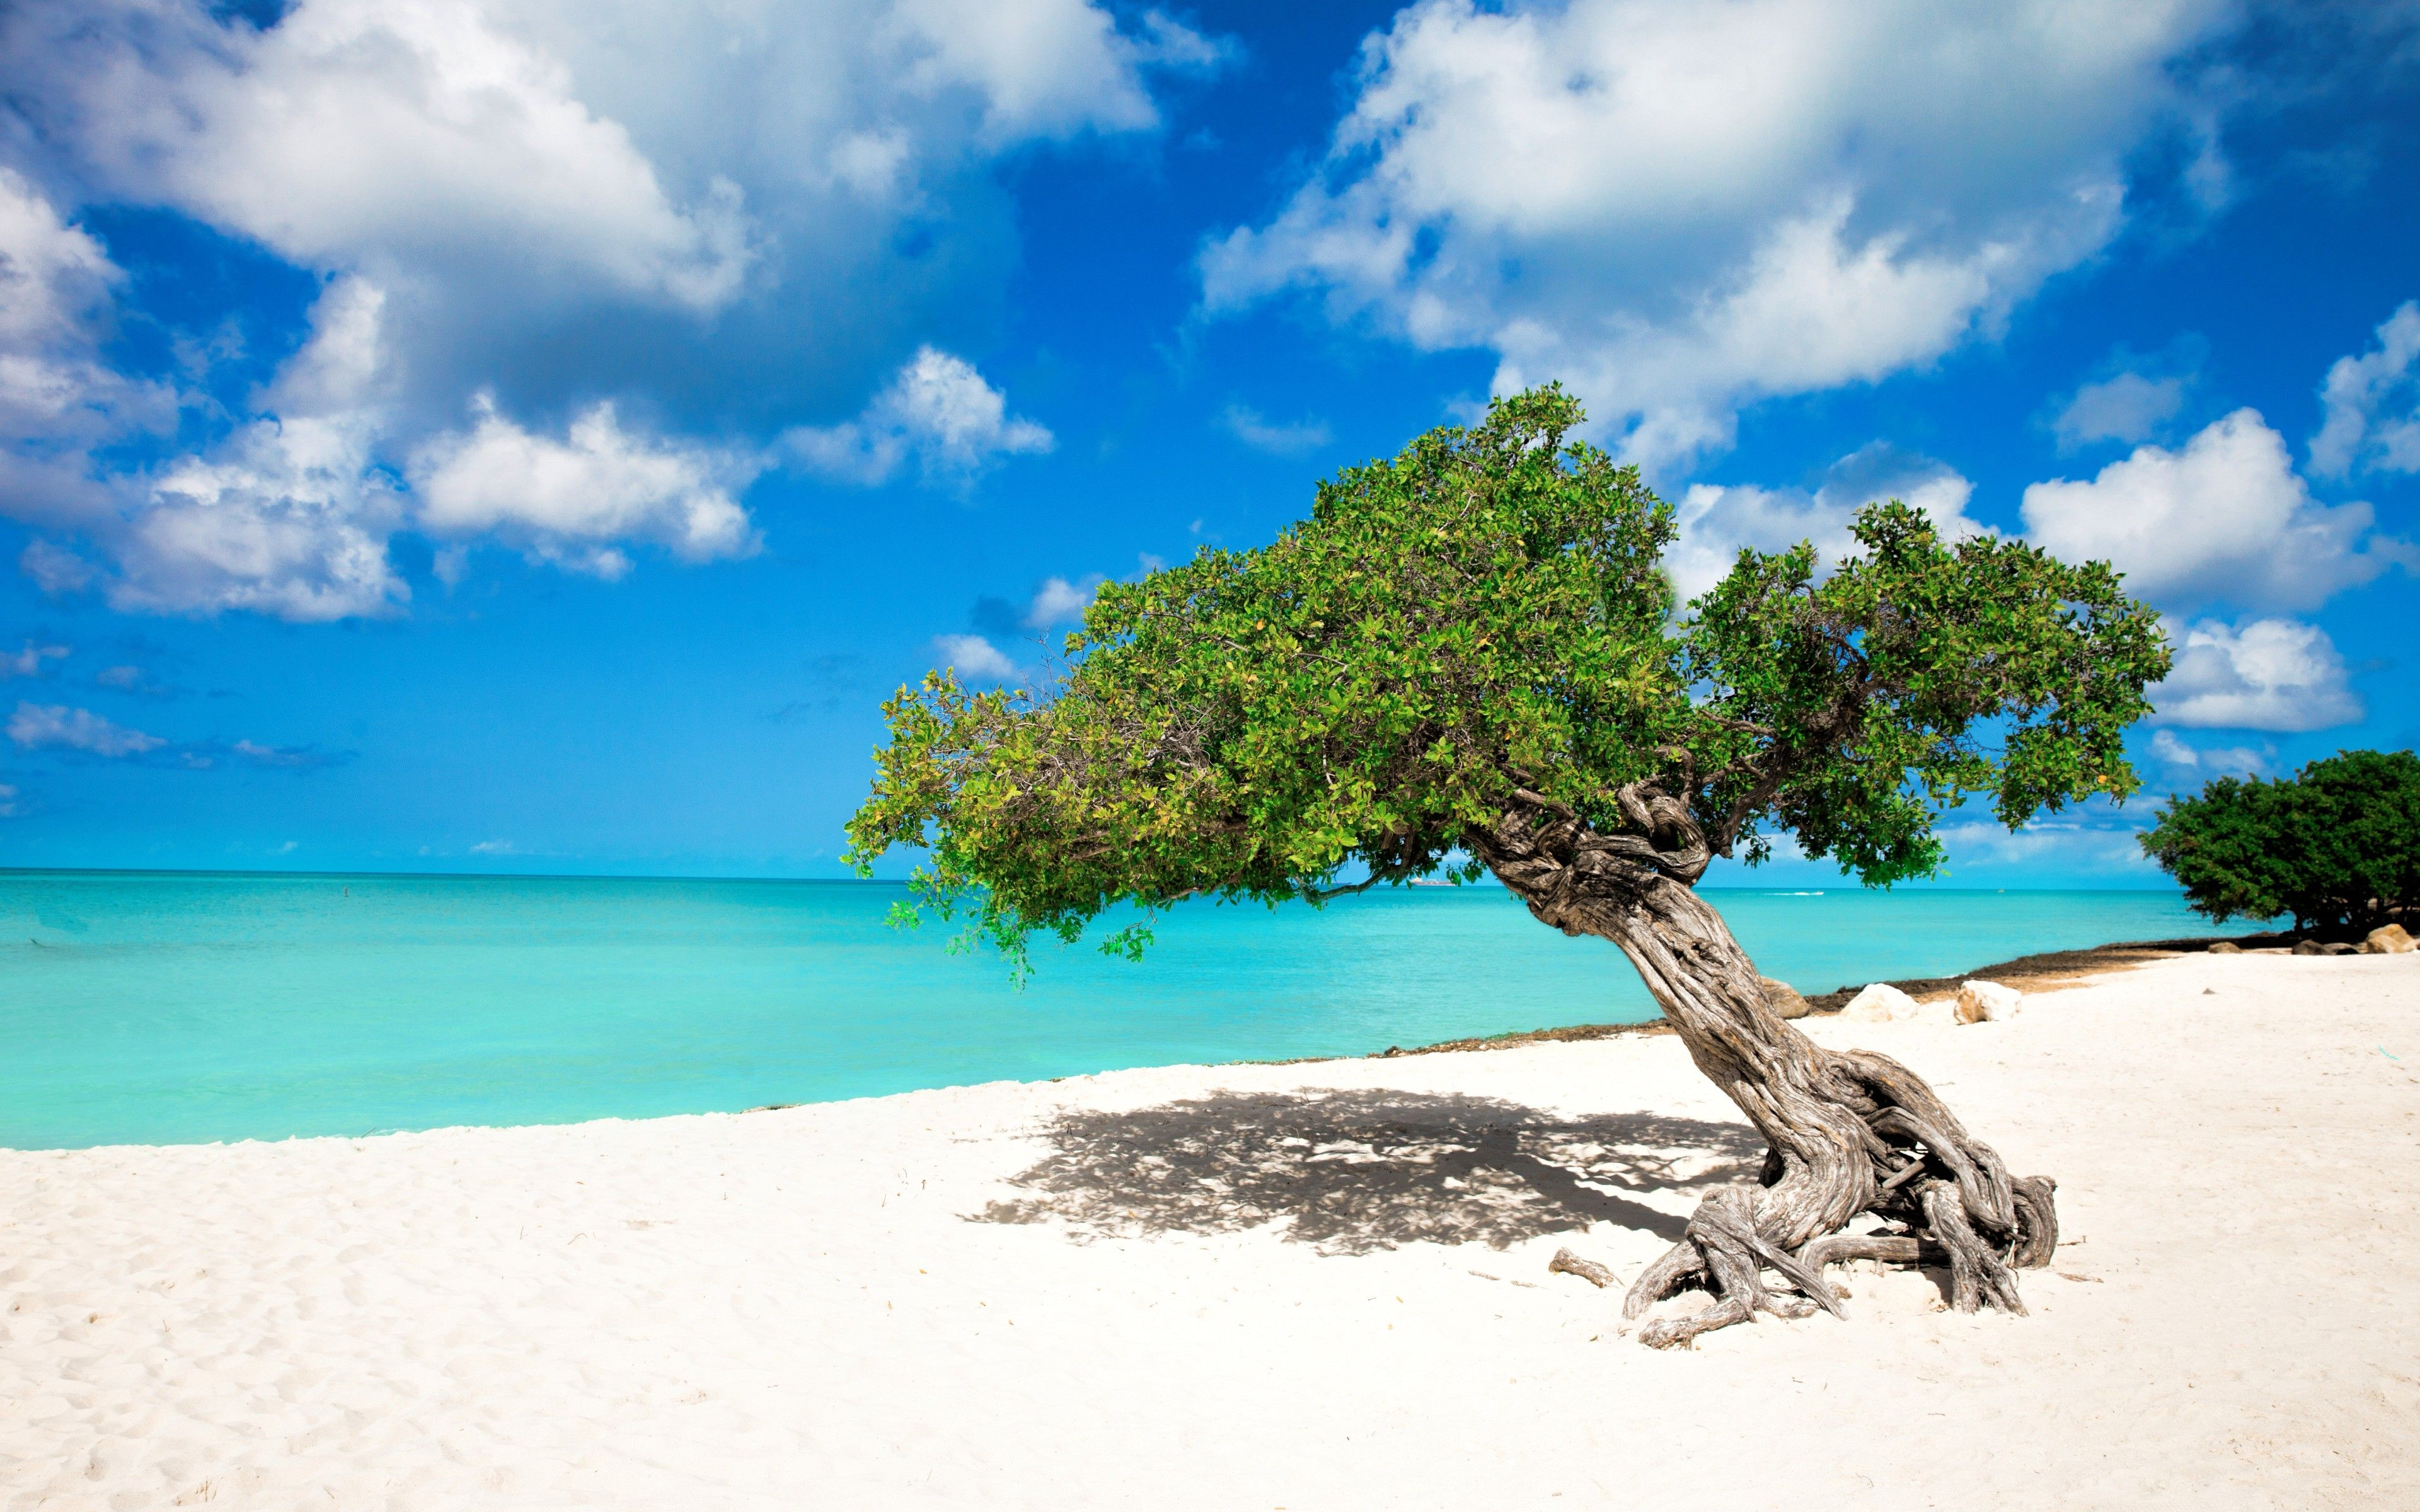 65 Aruba Beachfront Scene Desktop Wallpapers   Download at 3840x2400